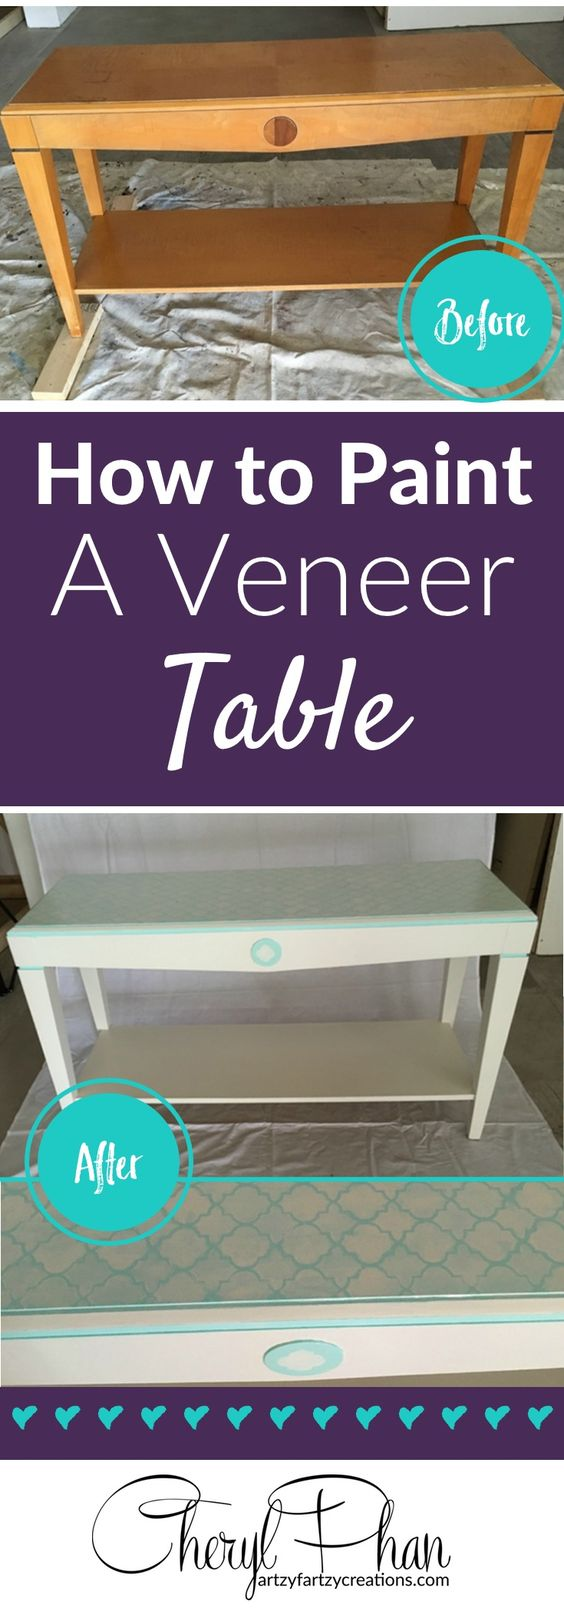 How to Paint Veneer   Painting a Veneer Table   Furniture Makeovers and Painting Tips by Cheryl Phan